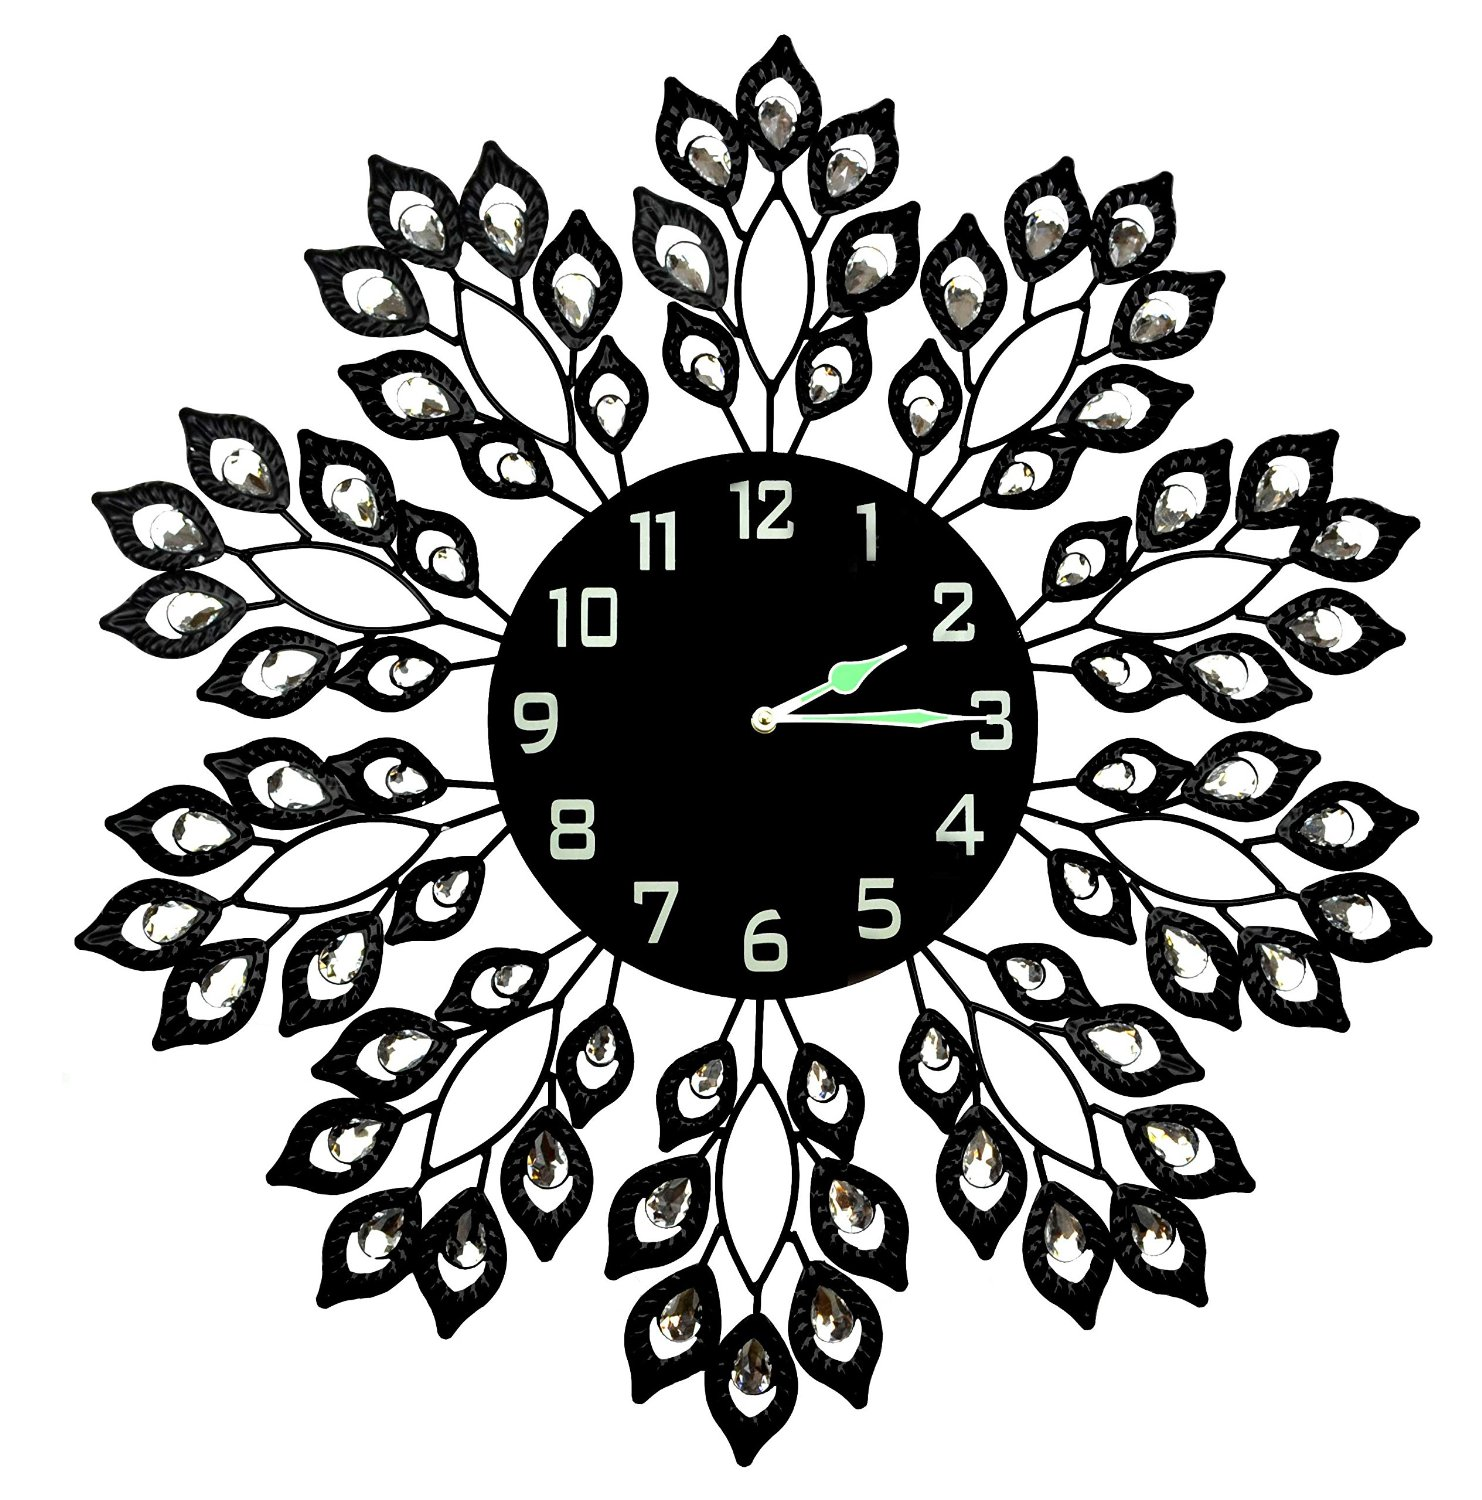 Lulu Decor Decorative Black Leaf Metal Wall Clock, Black Glass Dial in Arabic Numerals,... by